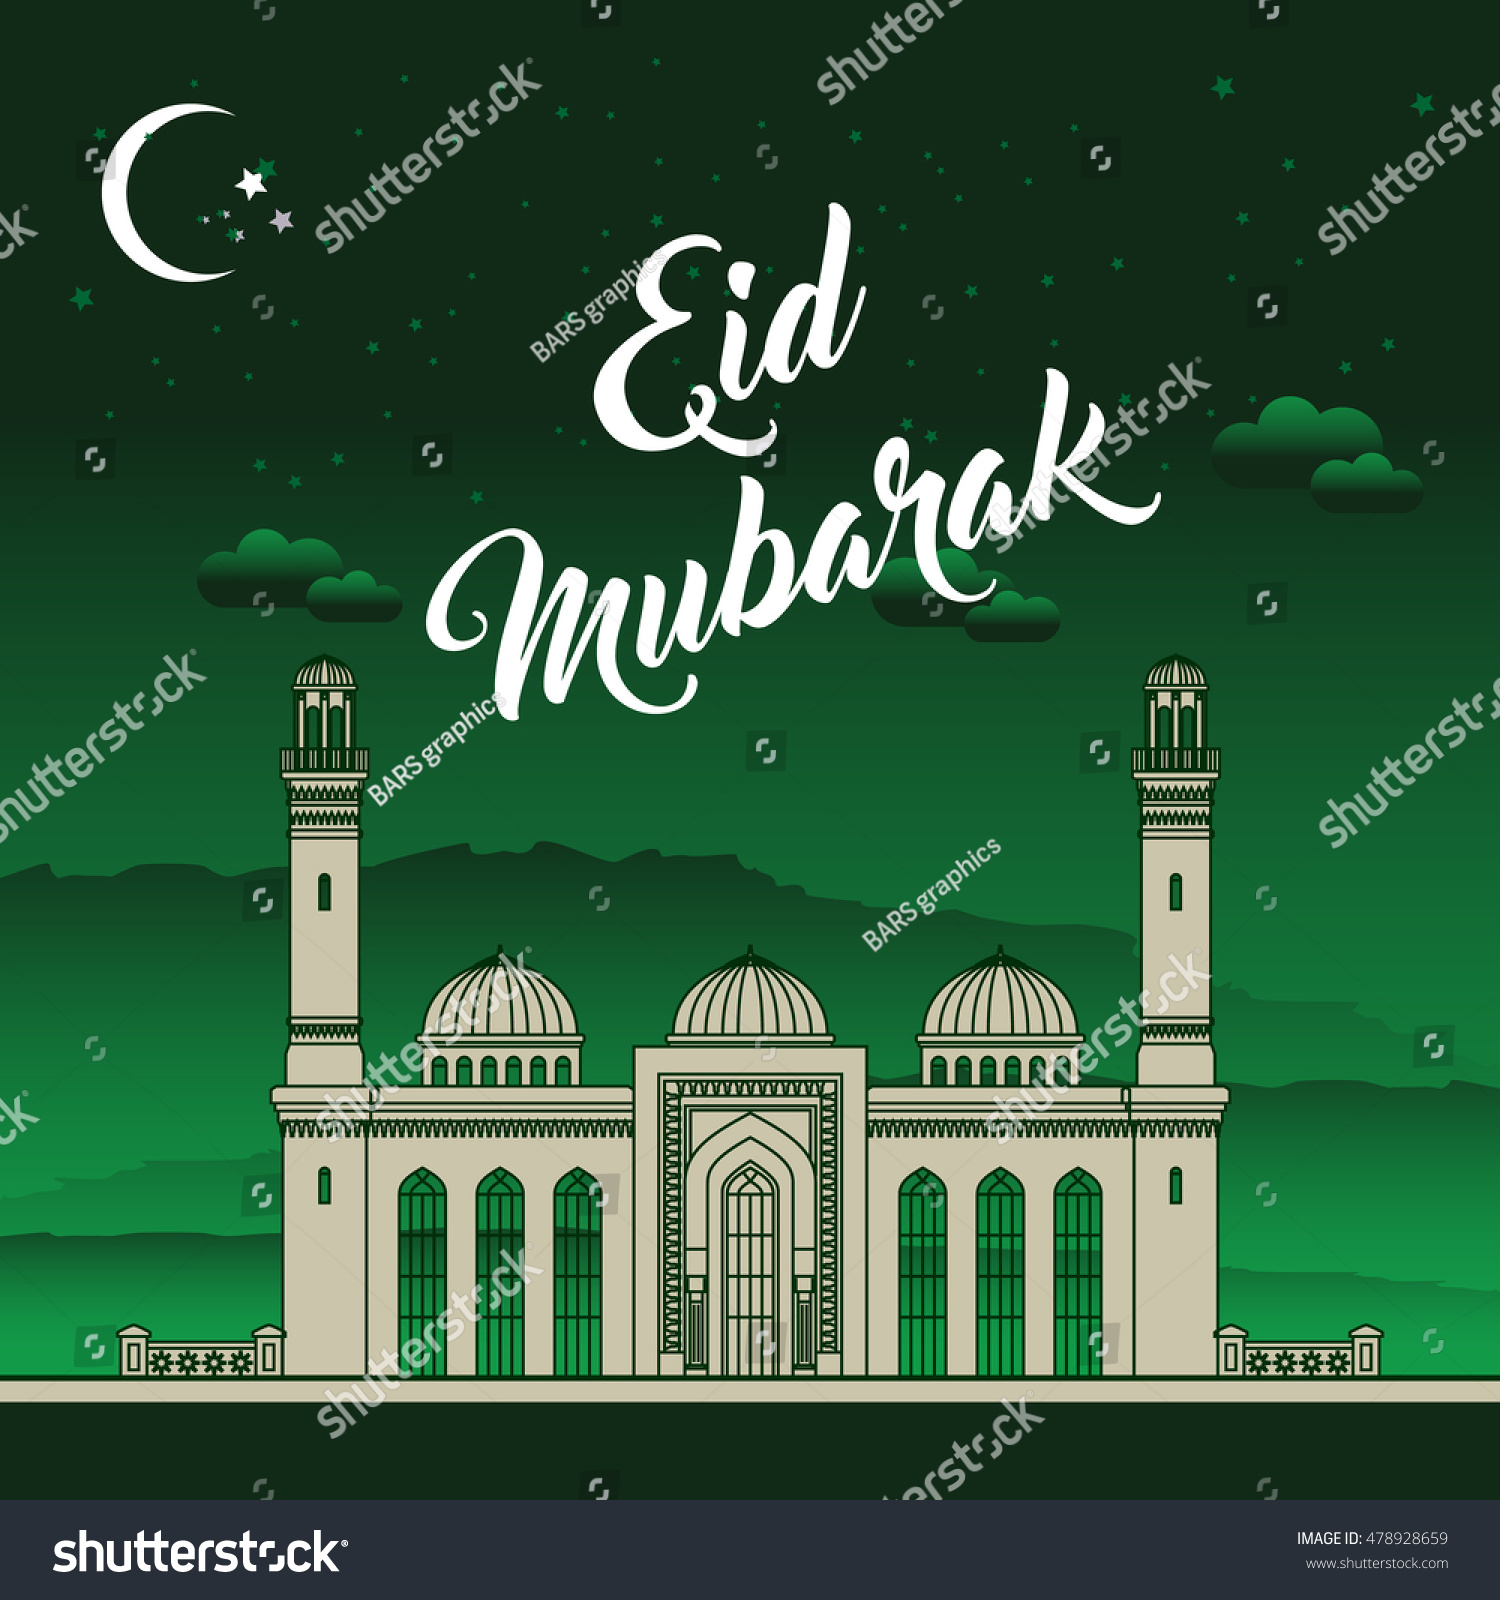 Royalty Free Stock Illustration Of Eid Mubarak Eid Al Adha Eid Ul